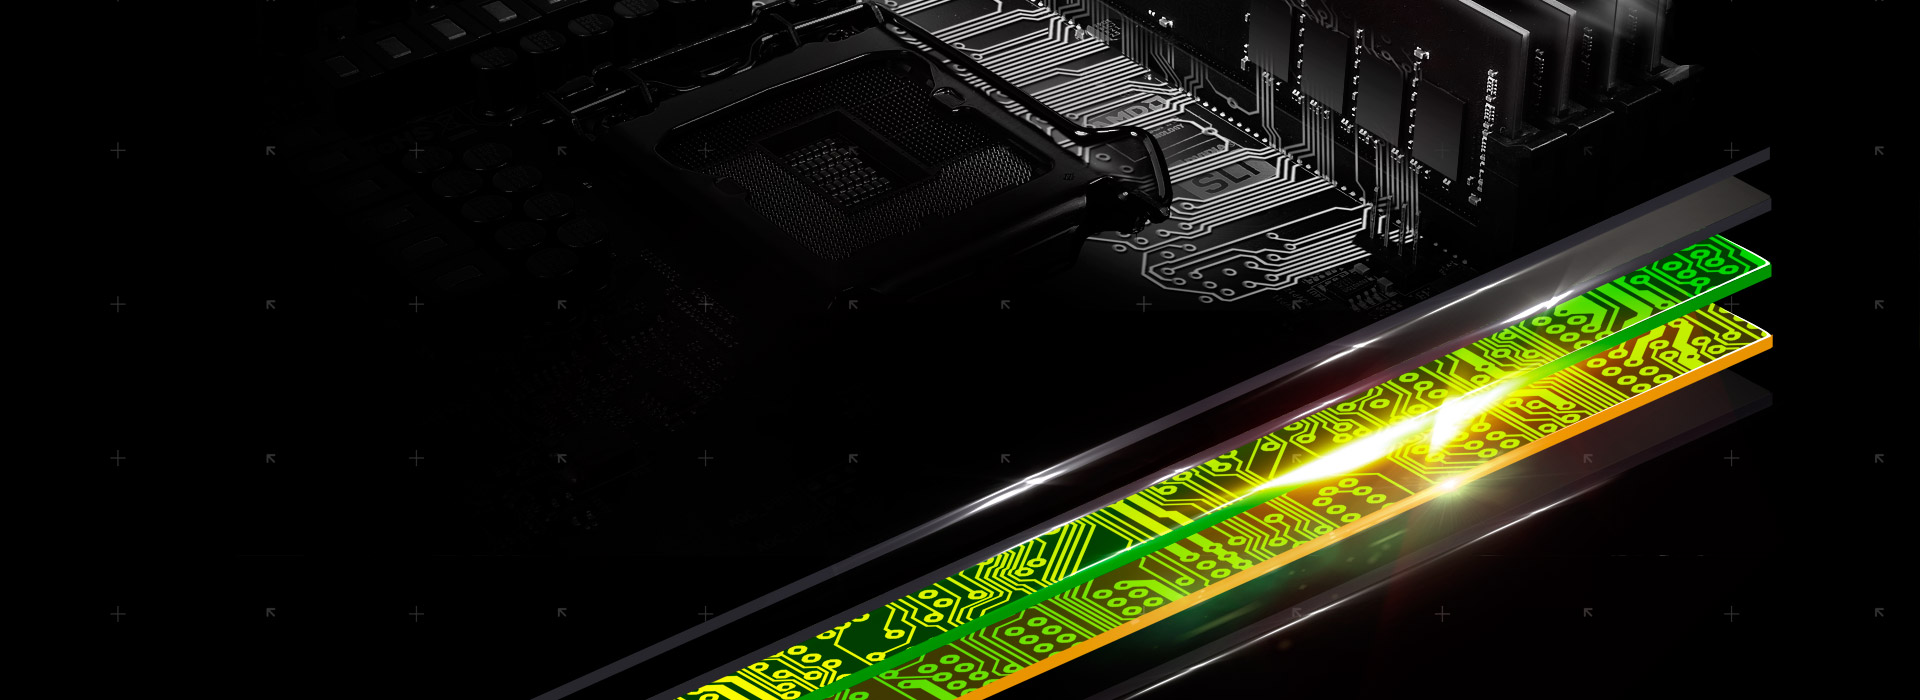 A close-up graphic showing the 4 layers that make the motherboard